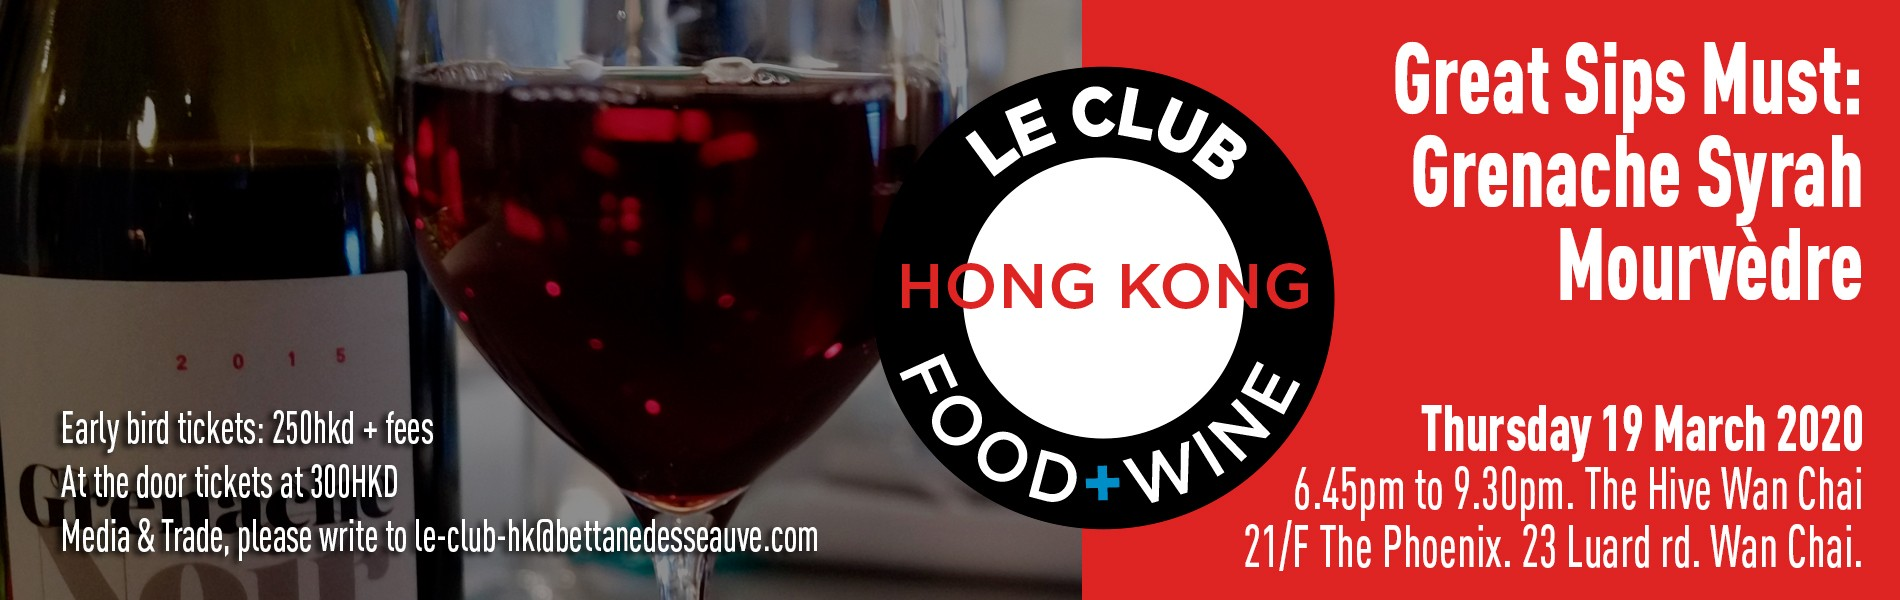 Le Club Food & Wine - Great Sips Must: Grenache, Syrah, Mourvèdre